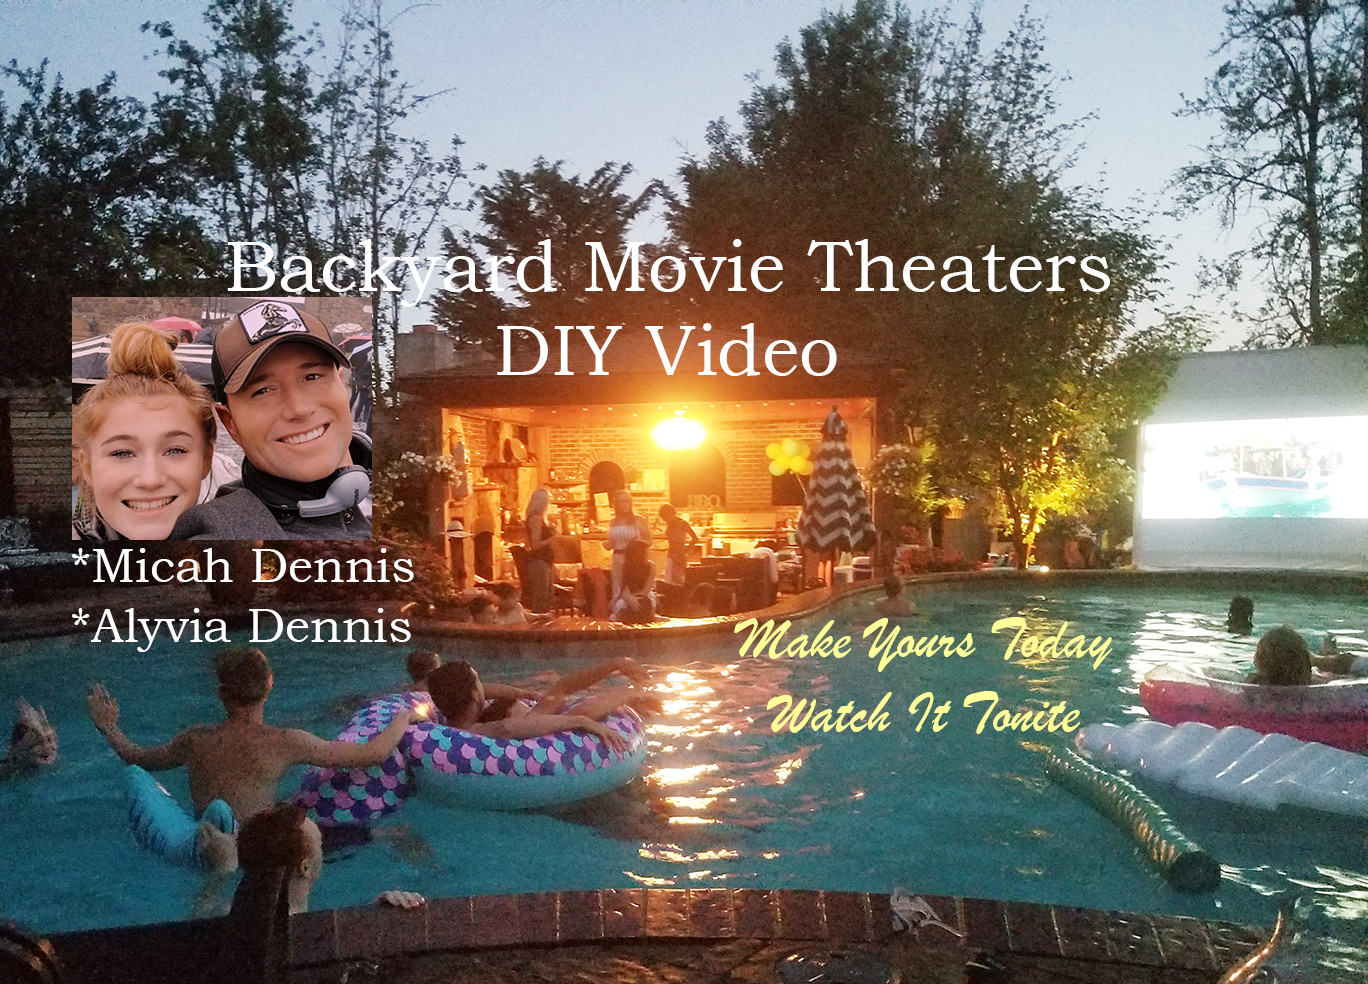 DYI Video Movie theatre